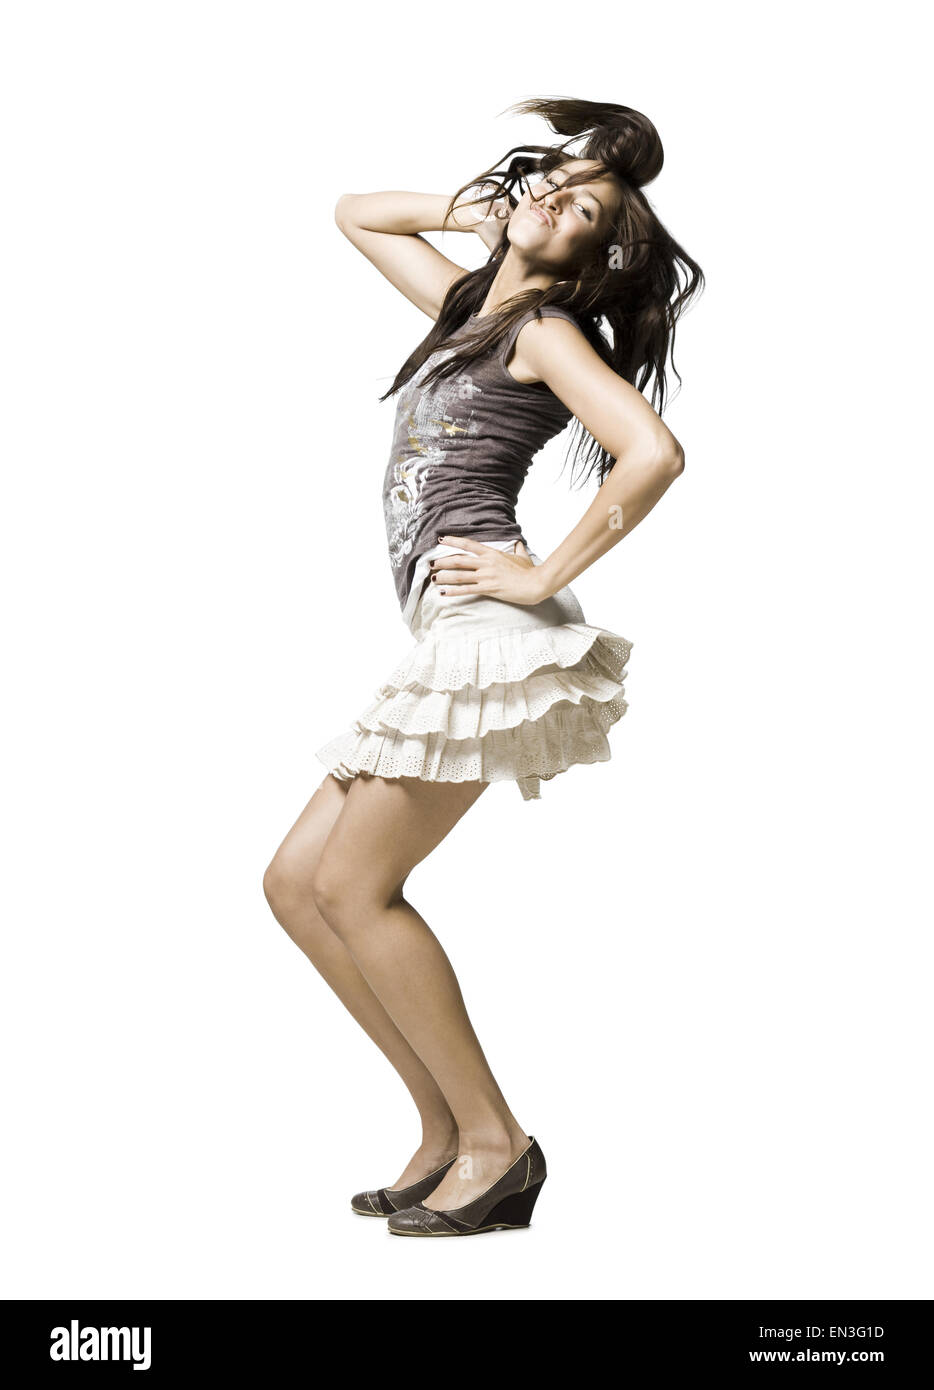 woman in a skirt dancing - Stock Image